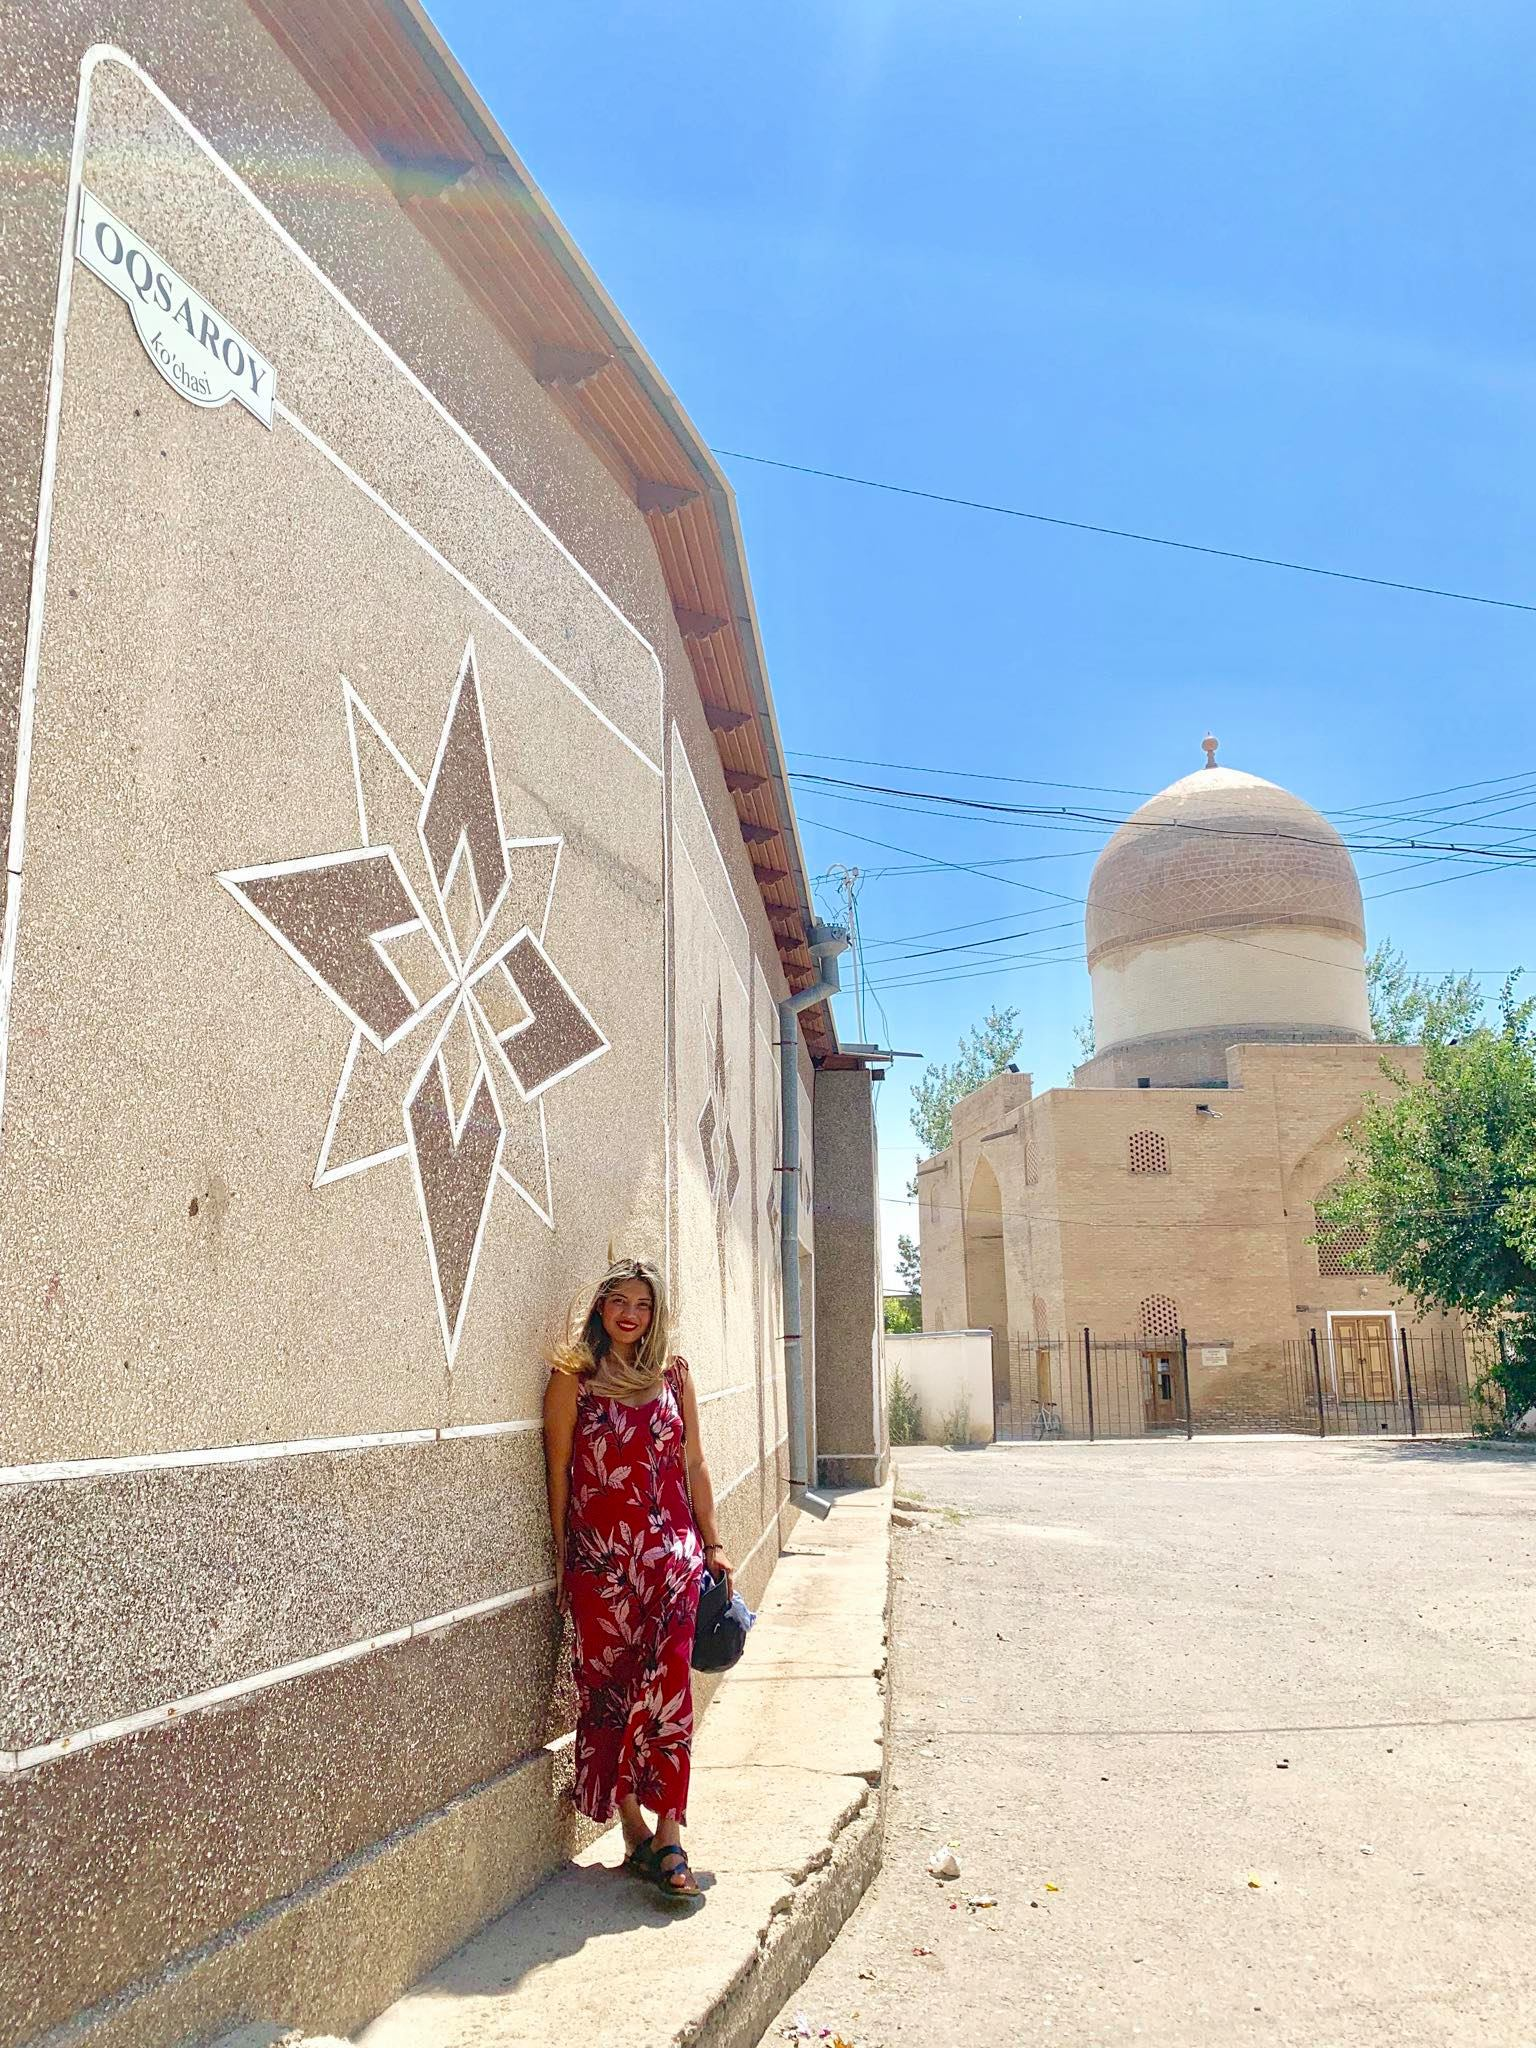 Kach Solo Travels in 2019 Hello from Samarqand  Samarkand in the southeastern part of Uzbekistan1.jpg